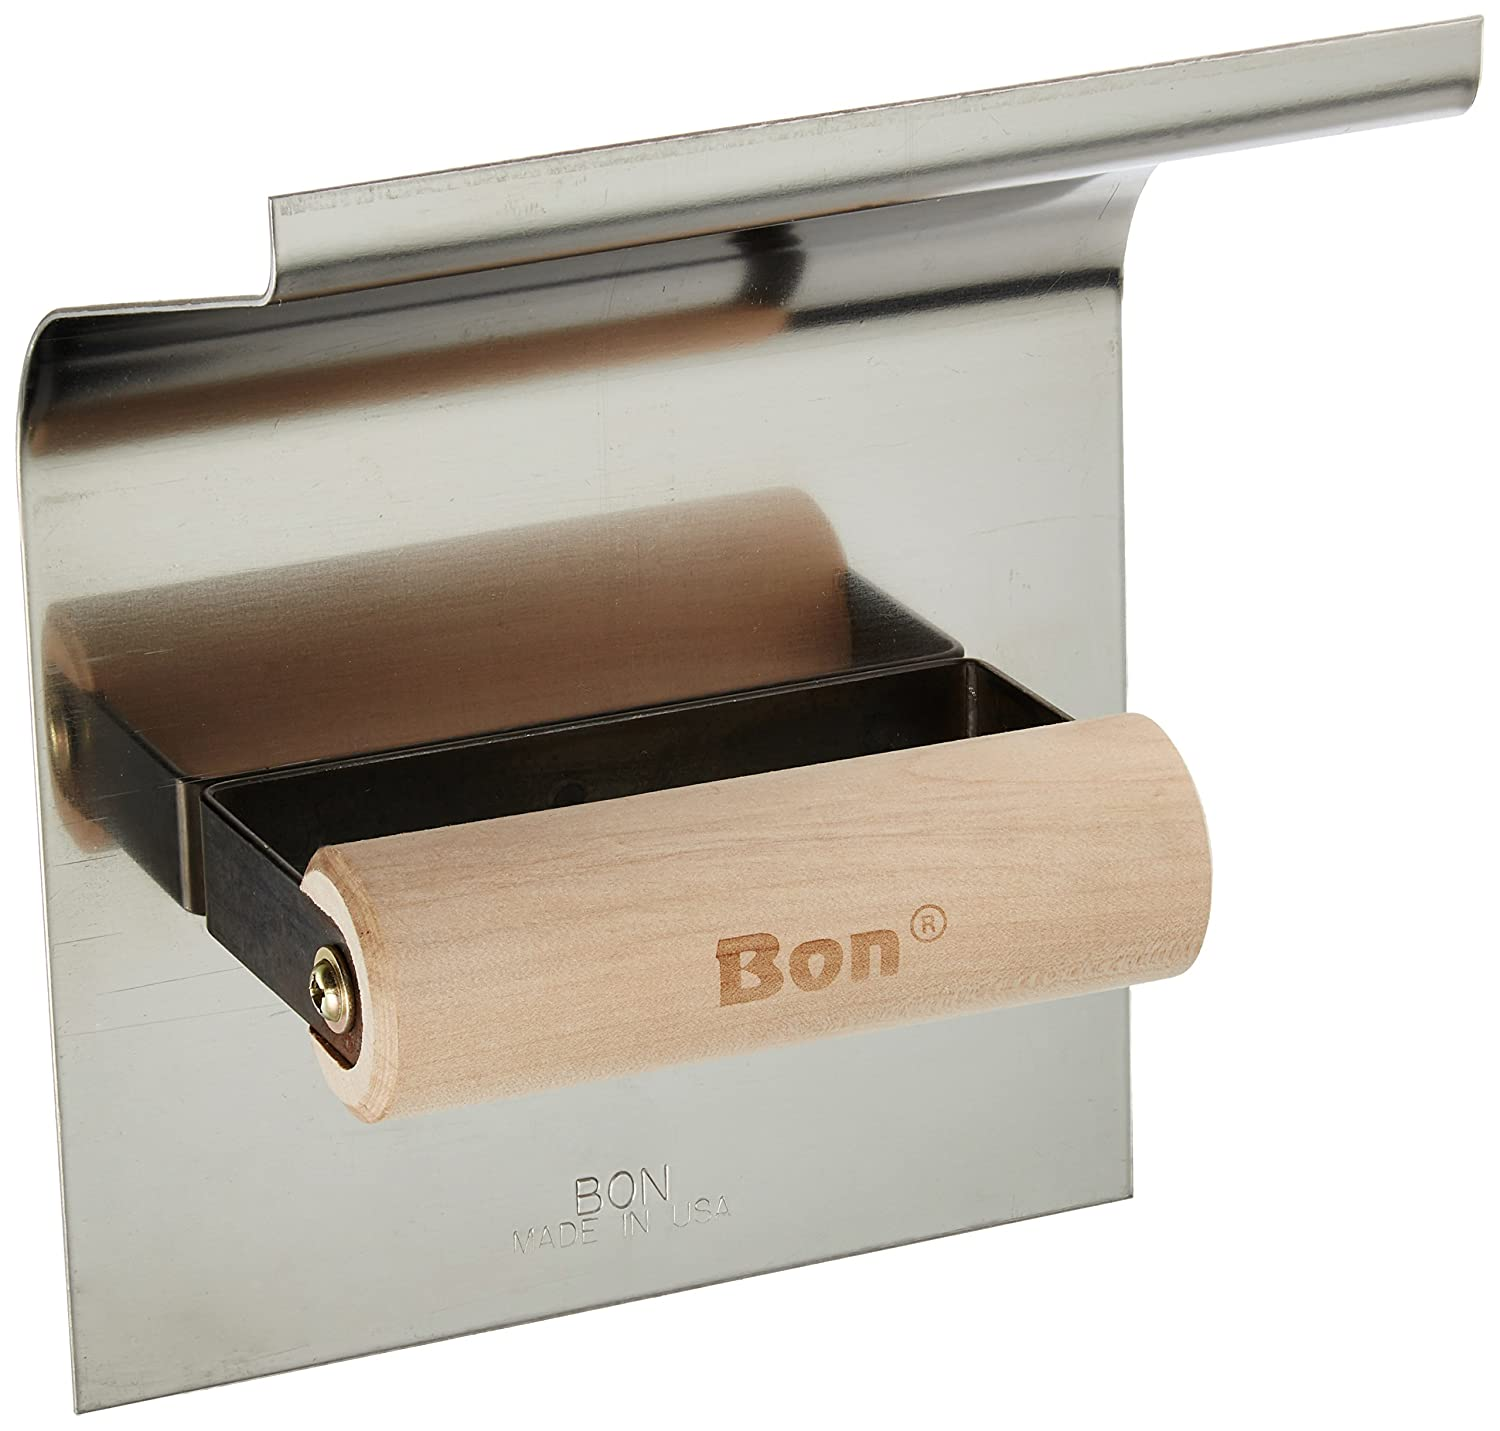 Bon 22-815 6-Inch by 6-Inch Stainless Steel Epoxy Base Tool with 1-Inch Radius and 4-Inch Lip